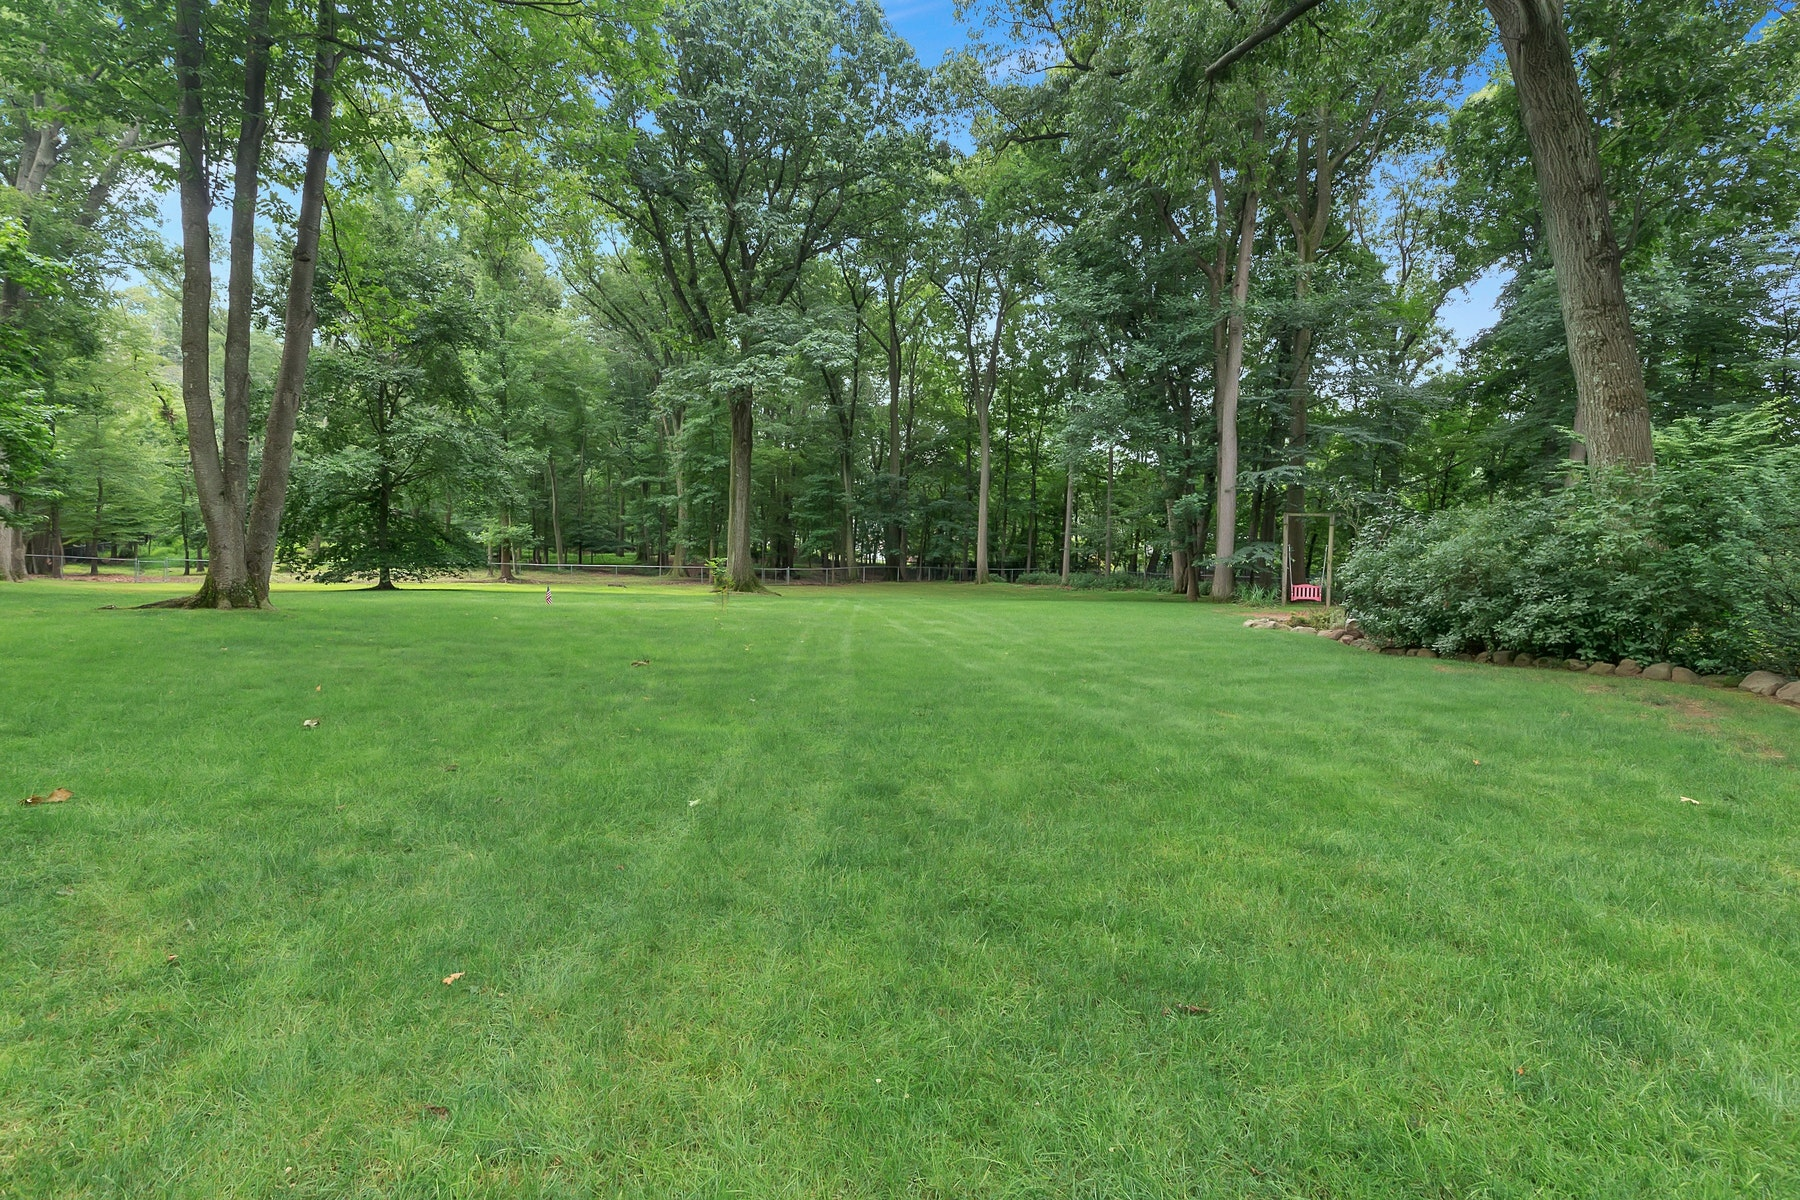 Terreno por un Venta en Approved Buildable Lots 1230 Cooper Road Scotch Plains, Nueva Jersey, 07076 Estados Unidos